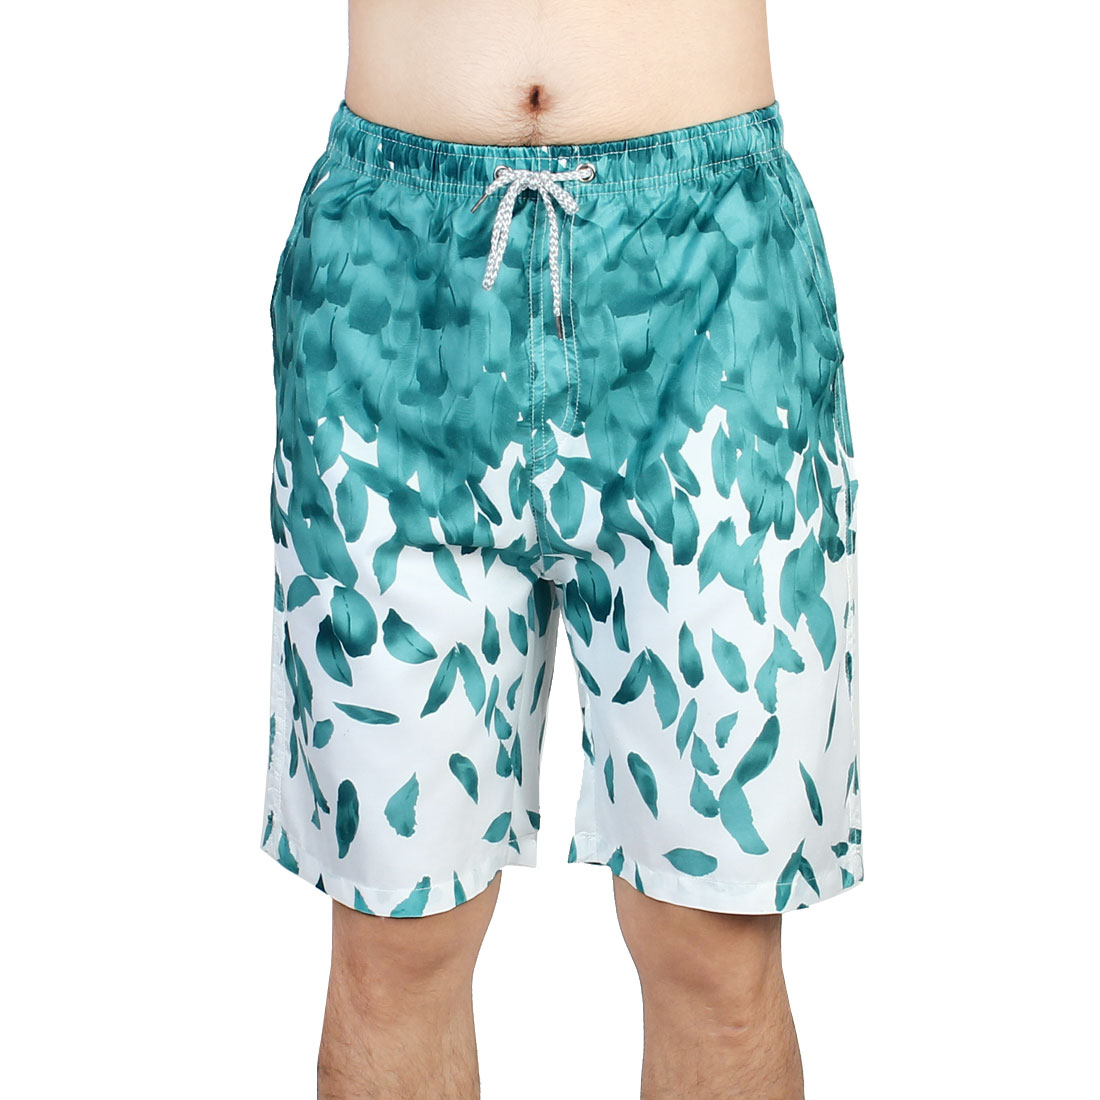 Adult Men Polyester Breathable Half Pants Outdoor Beach Shorts Adjustable Swim Trunks W31